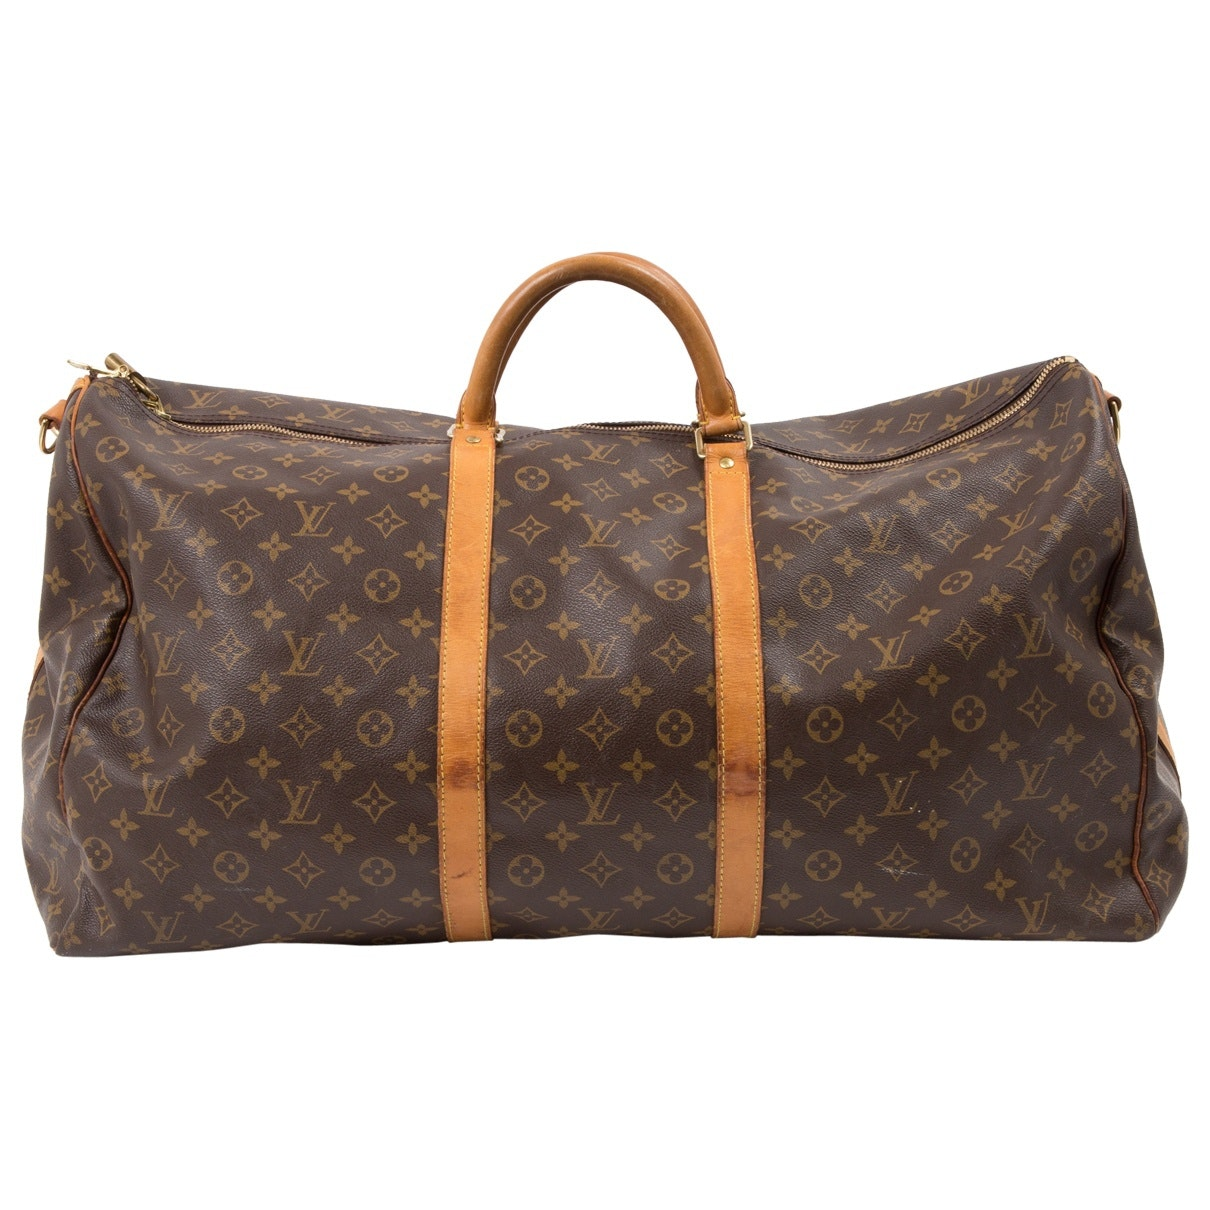 Borse da viaggio donna louis vuitton in sconto 27 for Borse louis vuitton in offerta